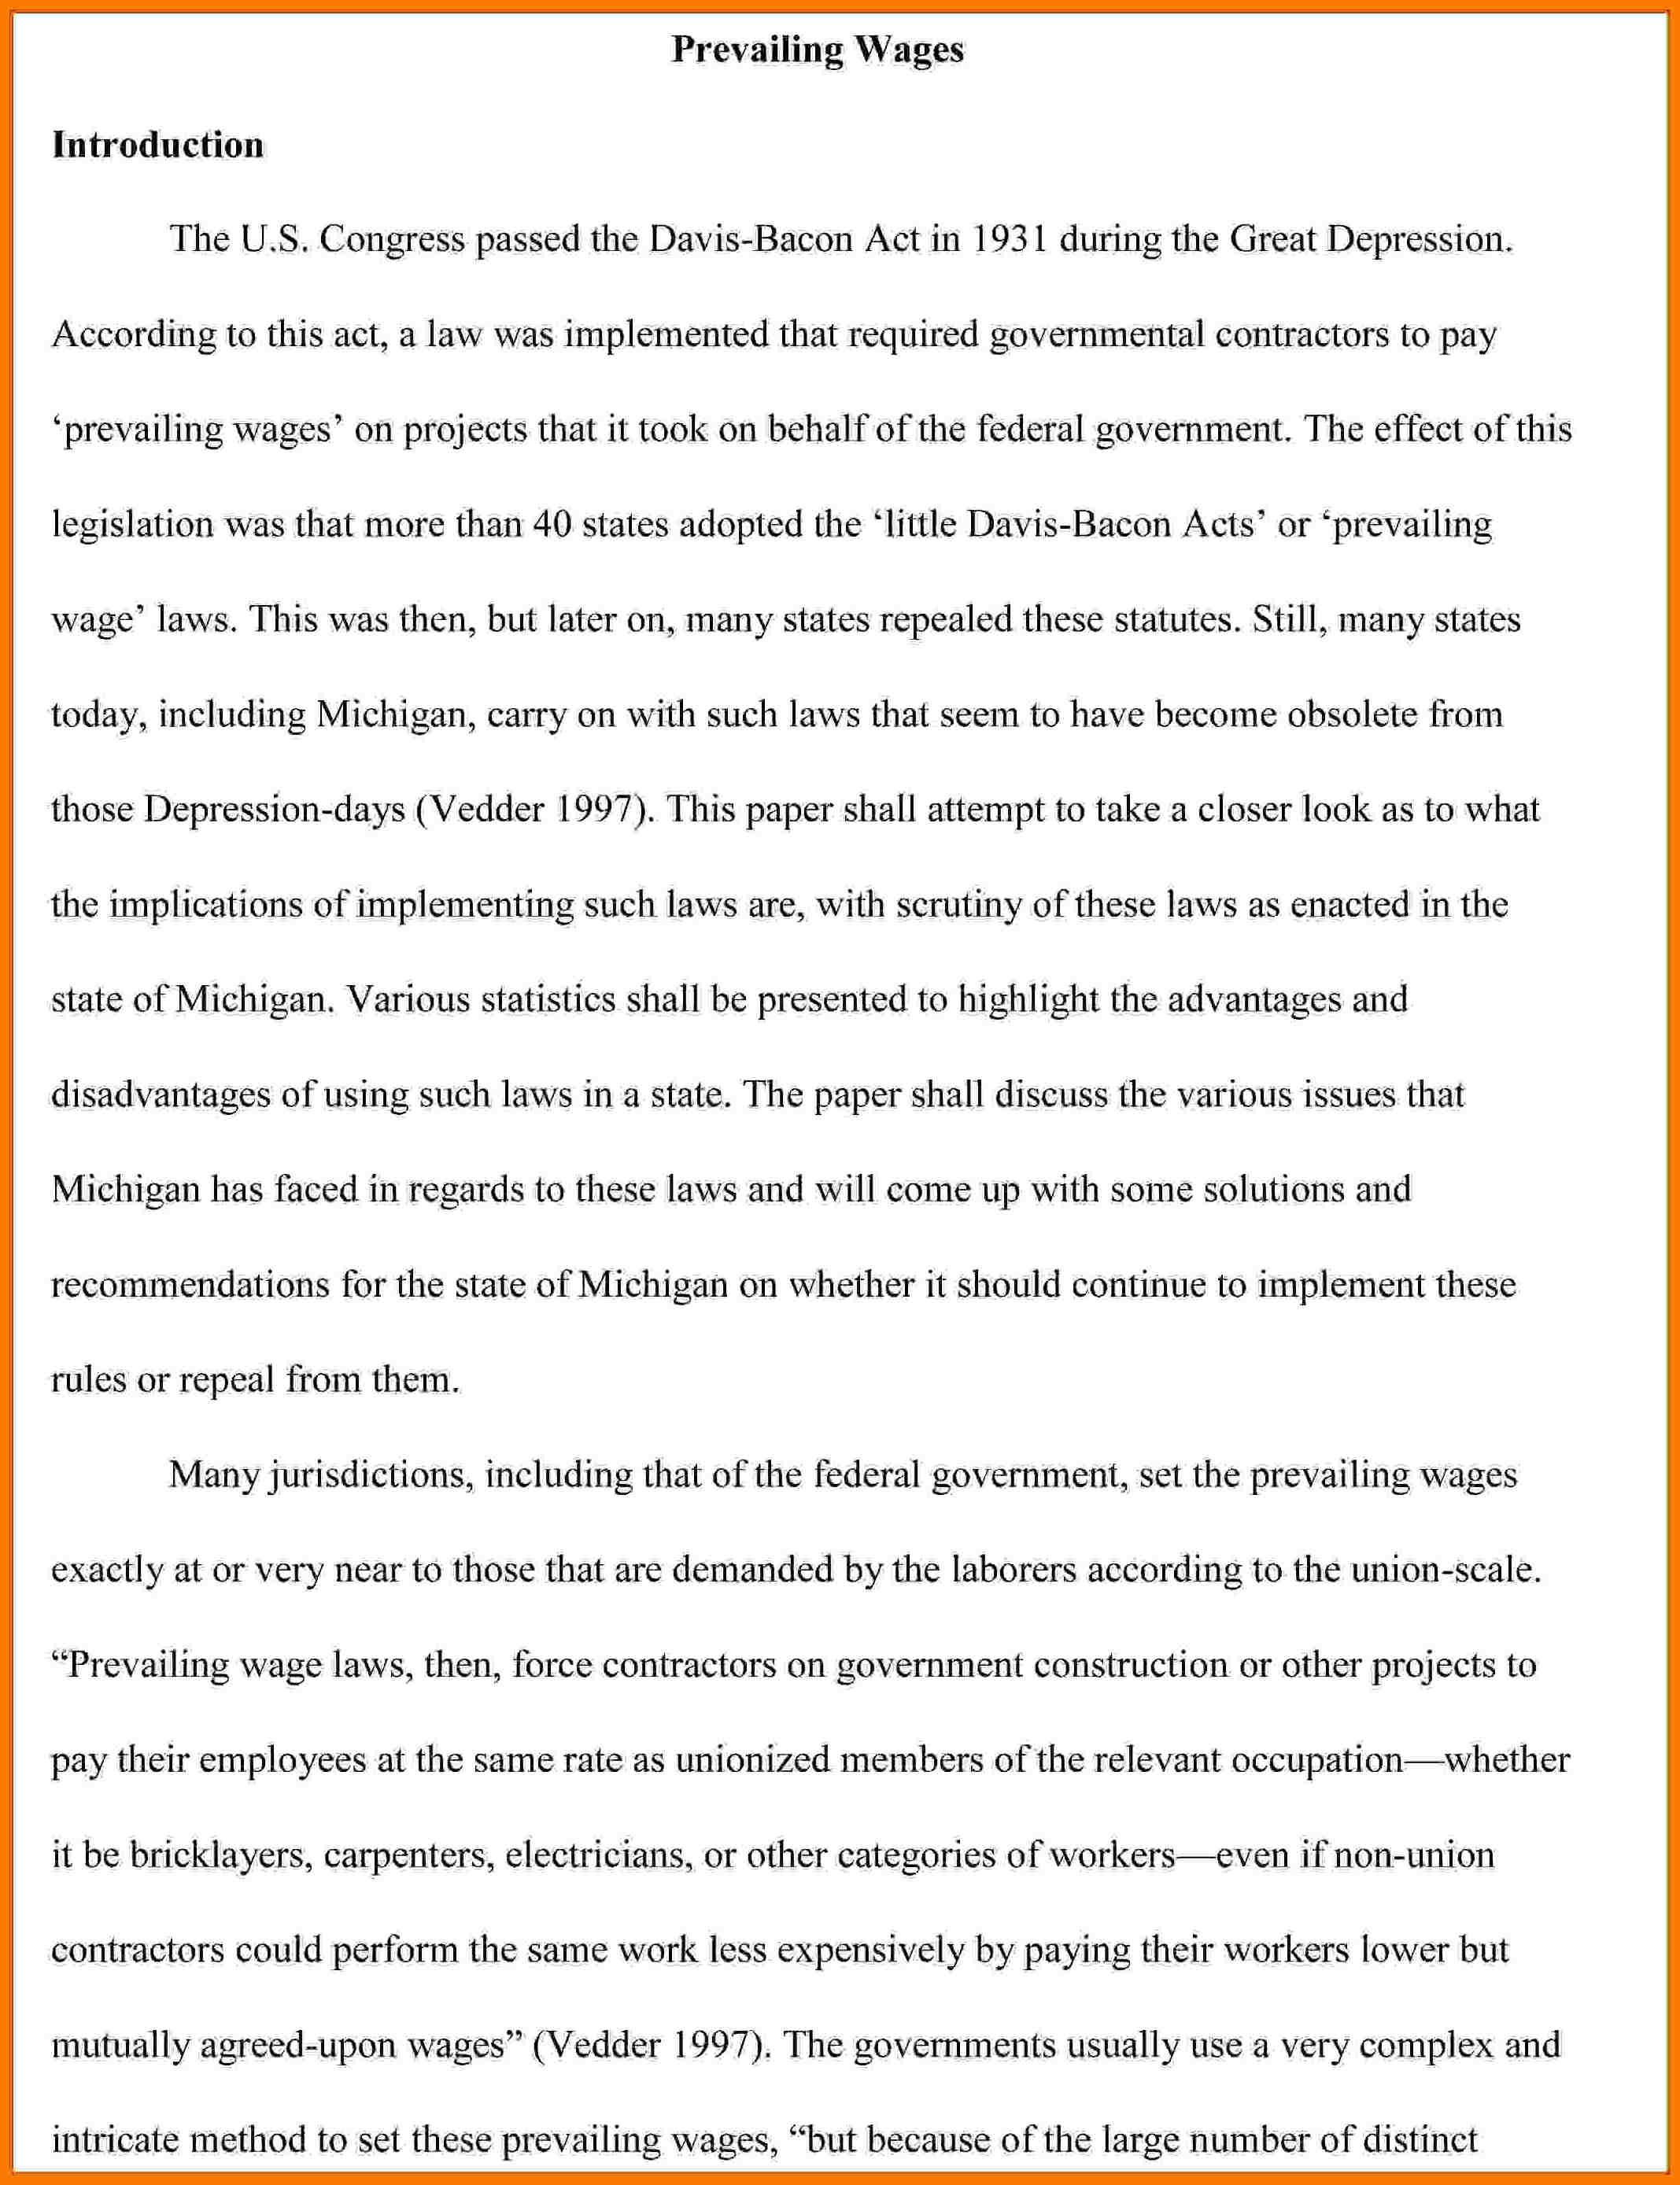 002 Collection Of Solutions Introduction Apa Paper Great Research How To Write Archaicawful For Sample Writing An A Style Full